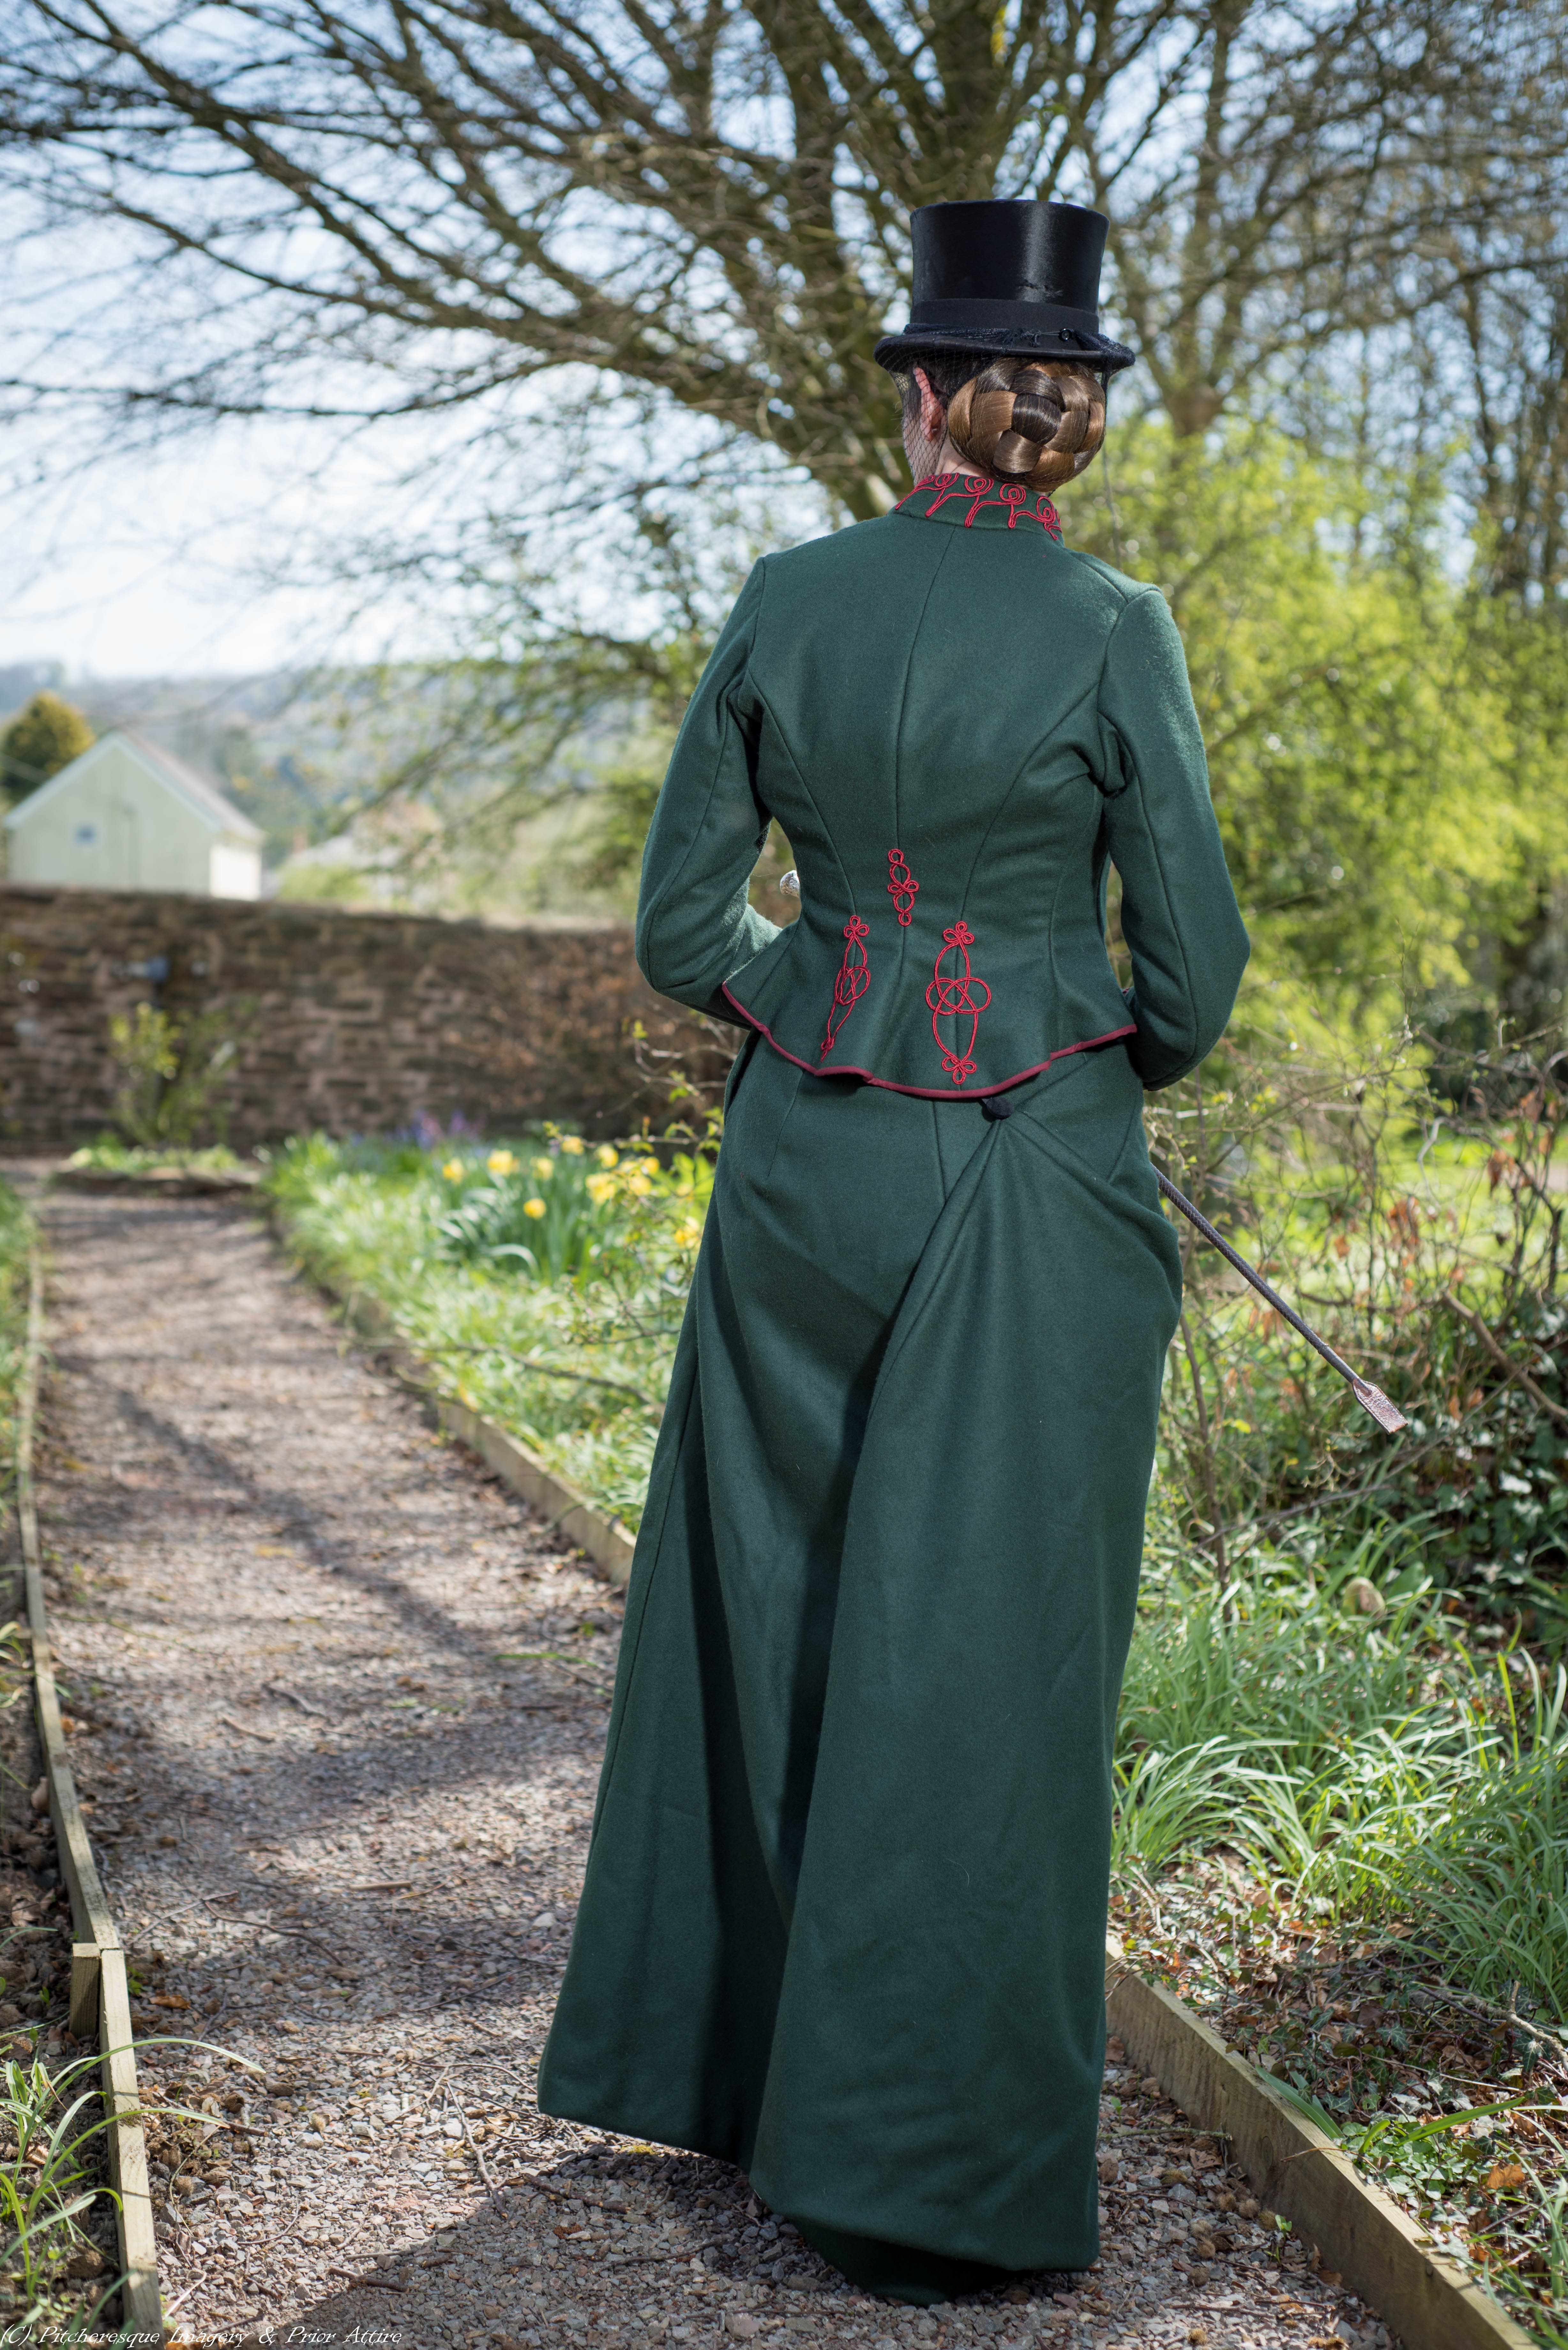 Victorian Riding Habits Bespoke And Stock Items A Damsel In This Dress